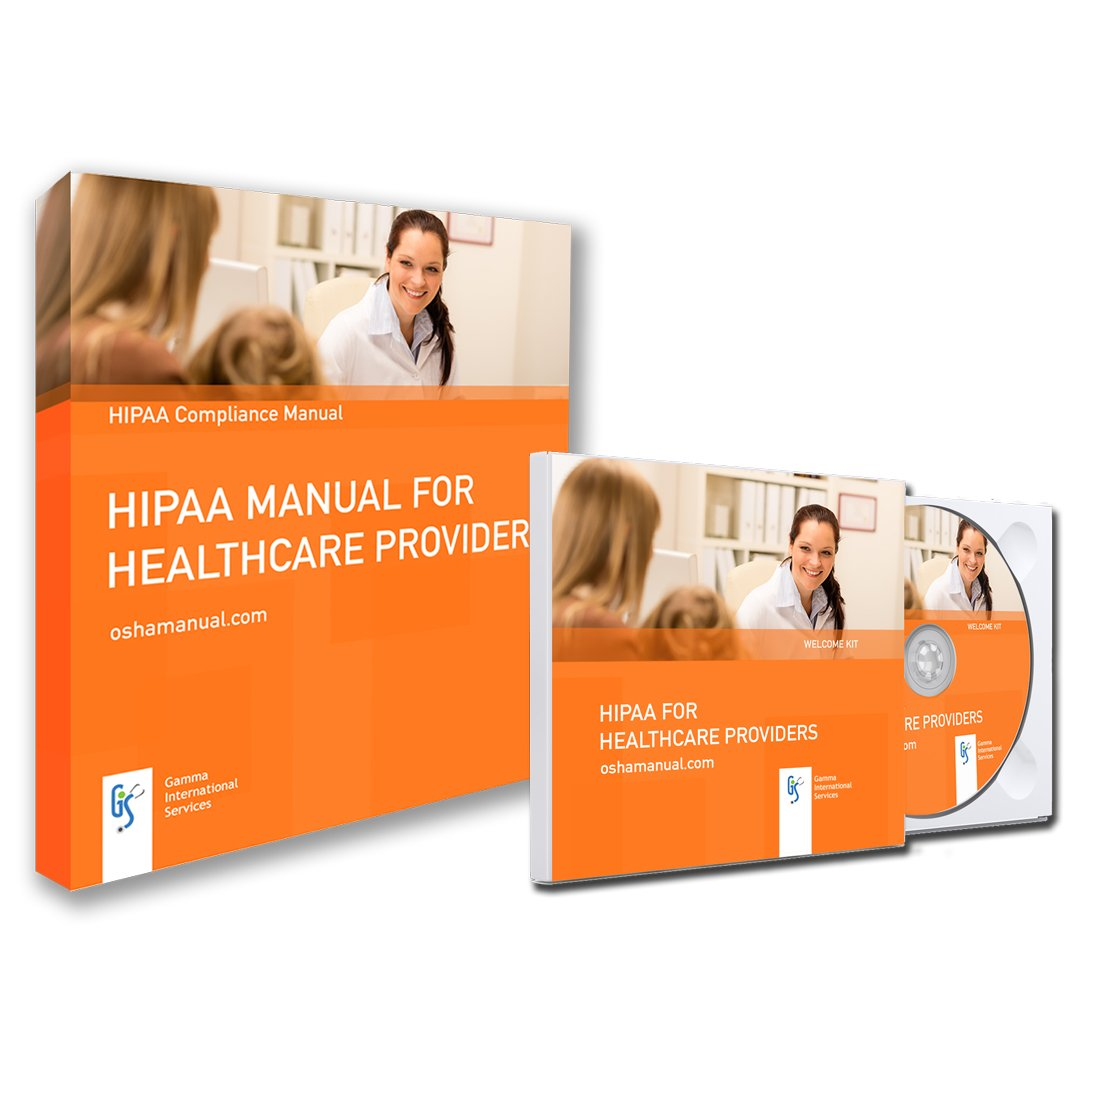 2018 HIPAA Manual for Healthcare Providers (Medical, Dental Offices, etc.):  Amazon.com: Industrial & Scientific